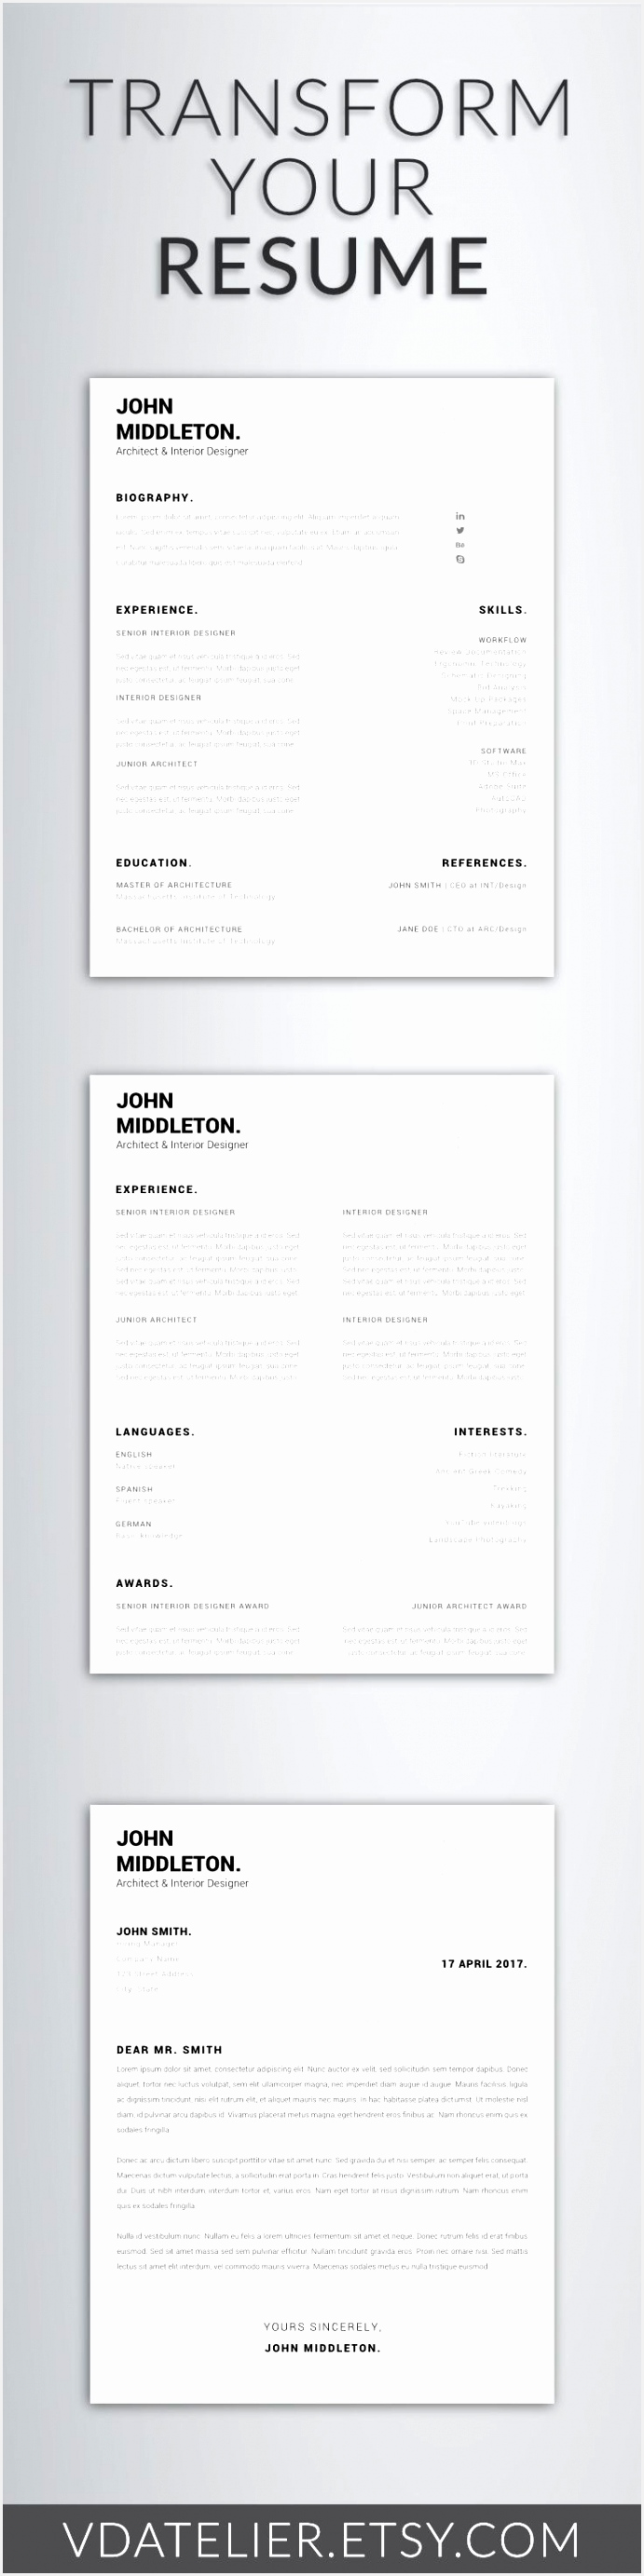 Head Teacher Resume Ucq3n Inspirational Modern Resume Template New Resume Template Cv Template Cover Letter Of Head Teacher Resume Uhlrc Elegant Resume Sample for Teaching Lovely Cv Resume Shqip Save Sample A